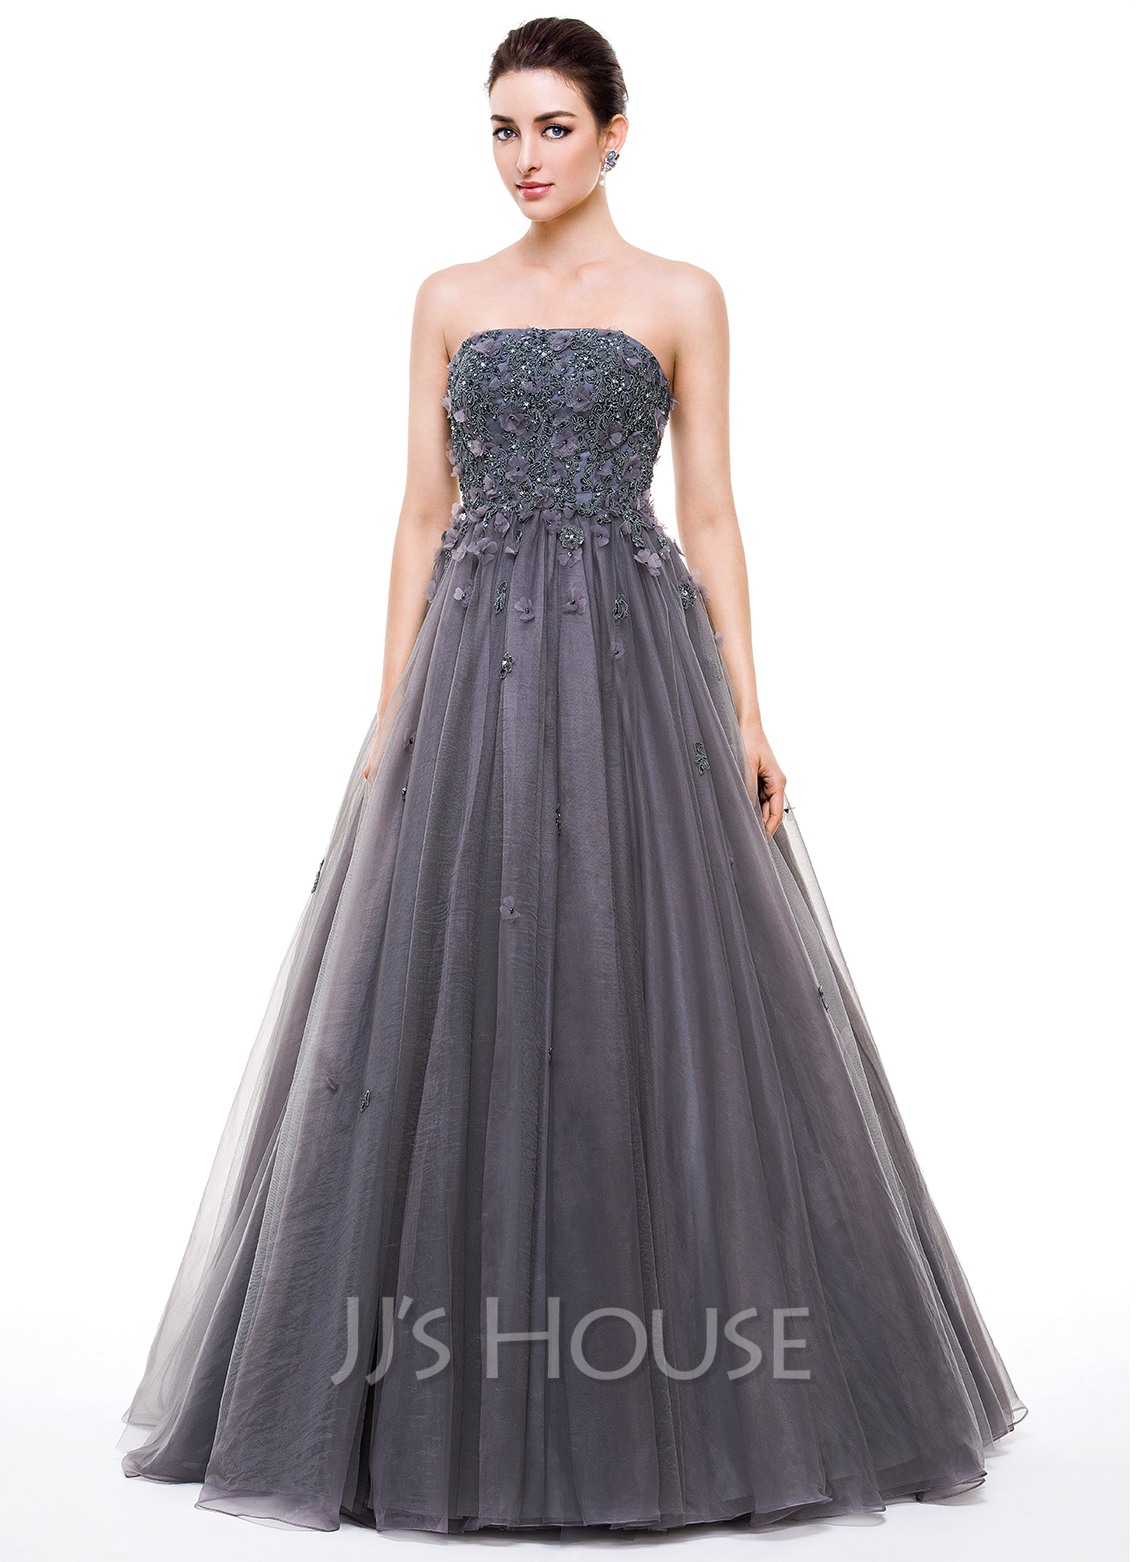 8f58515ac4b18 Ball-Gown Strapless Floor-Length Tulle Prom Dresses With Beading Appliques  Lace Flower(. Loading zoom